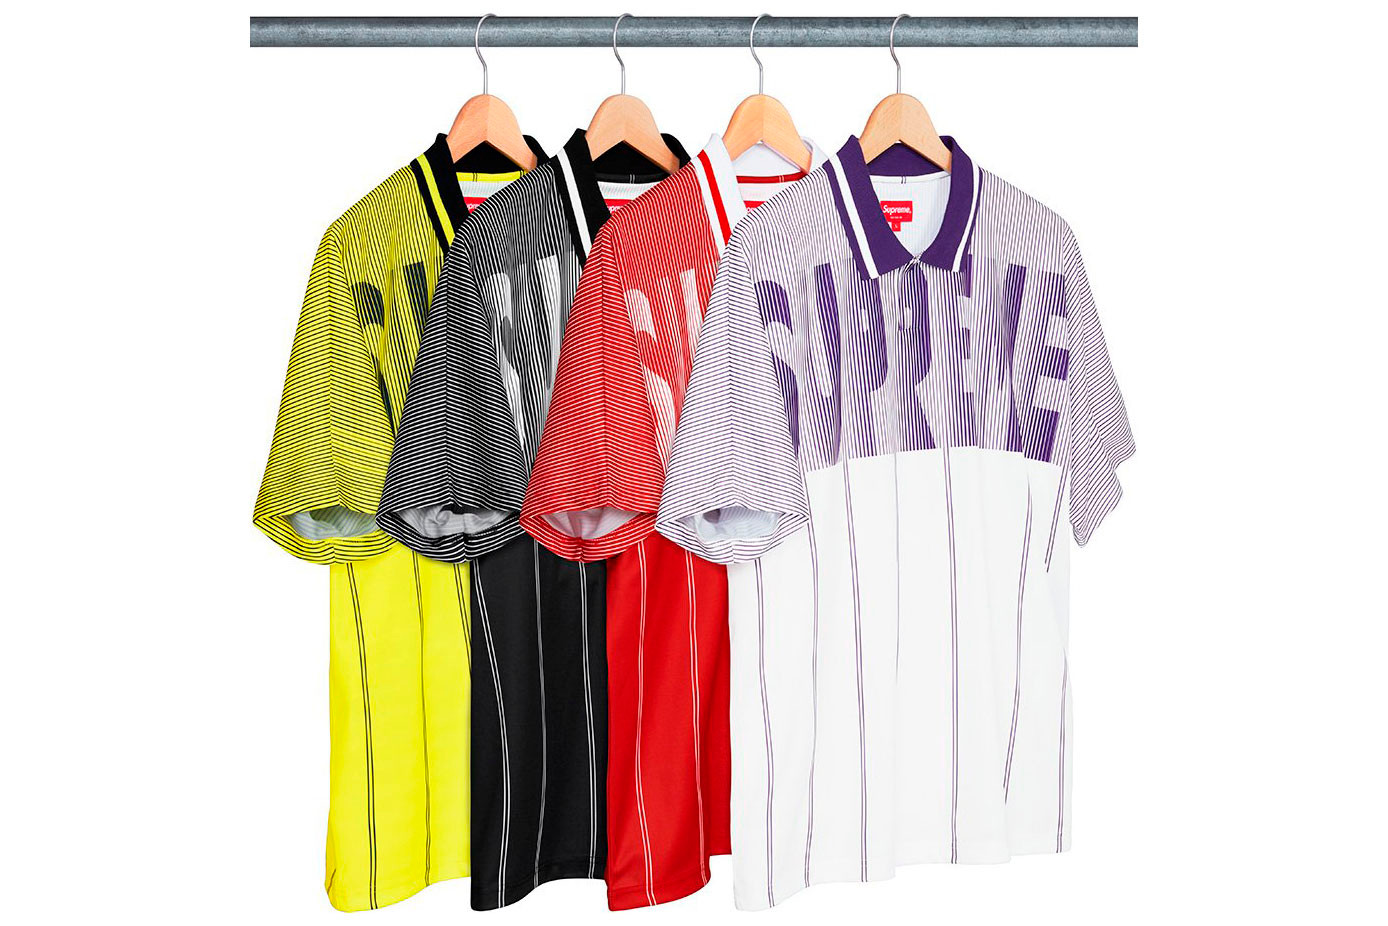 10 Streetwear Football Jerseys Part 2 2018 FIFA World Cup palace supreme adidas off white nike virgil abloh heron preston